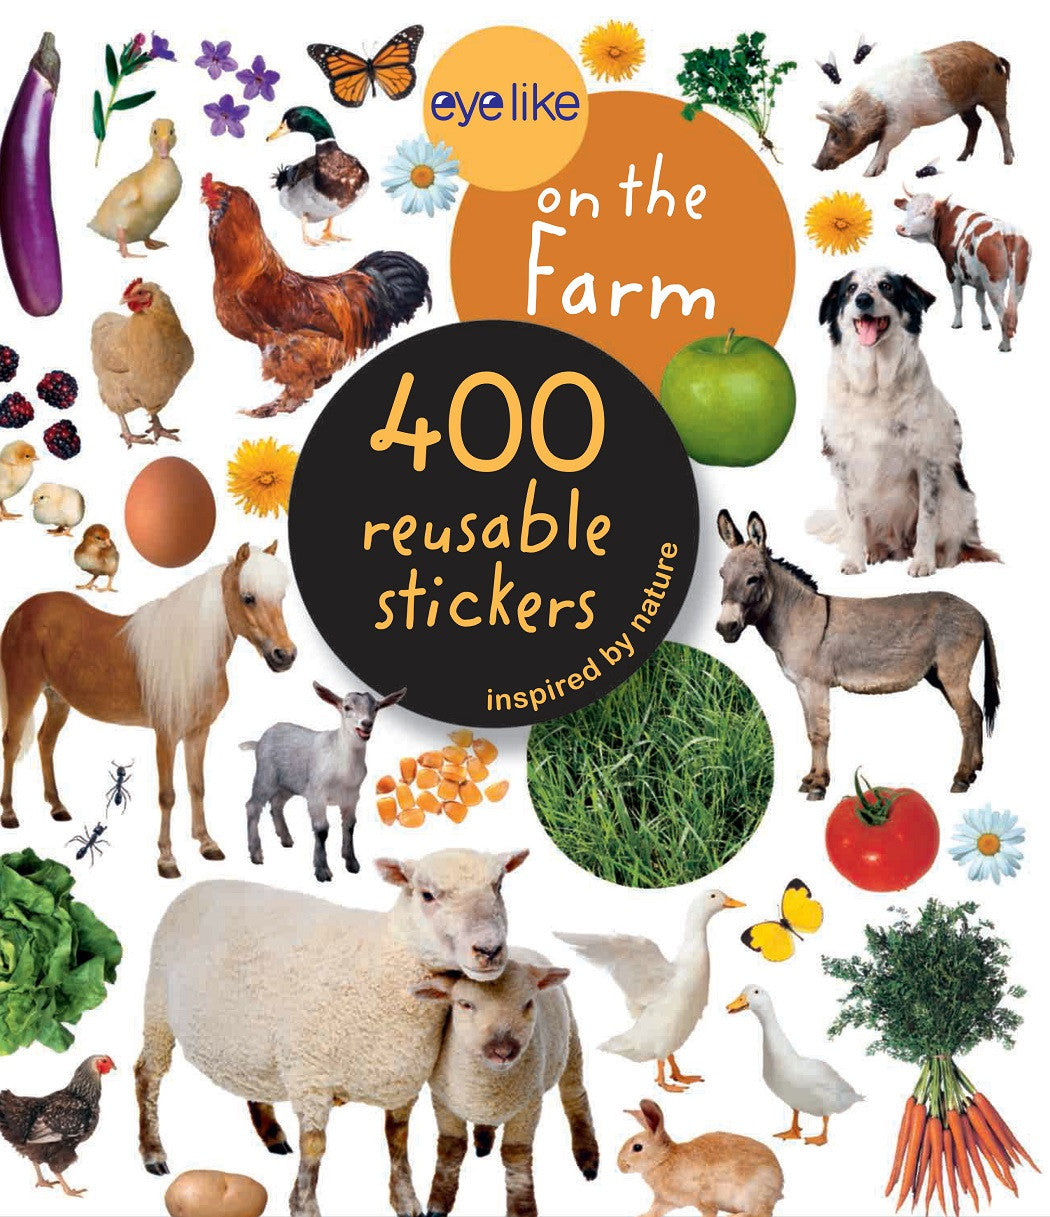 Eyelike Sticker Book: On The Farm w/400 Reusable Stickers - Off The Wall Toys and Gifts